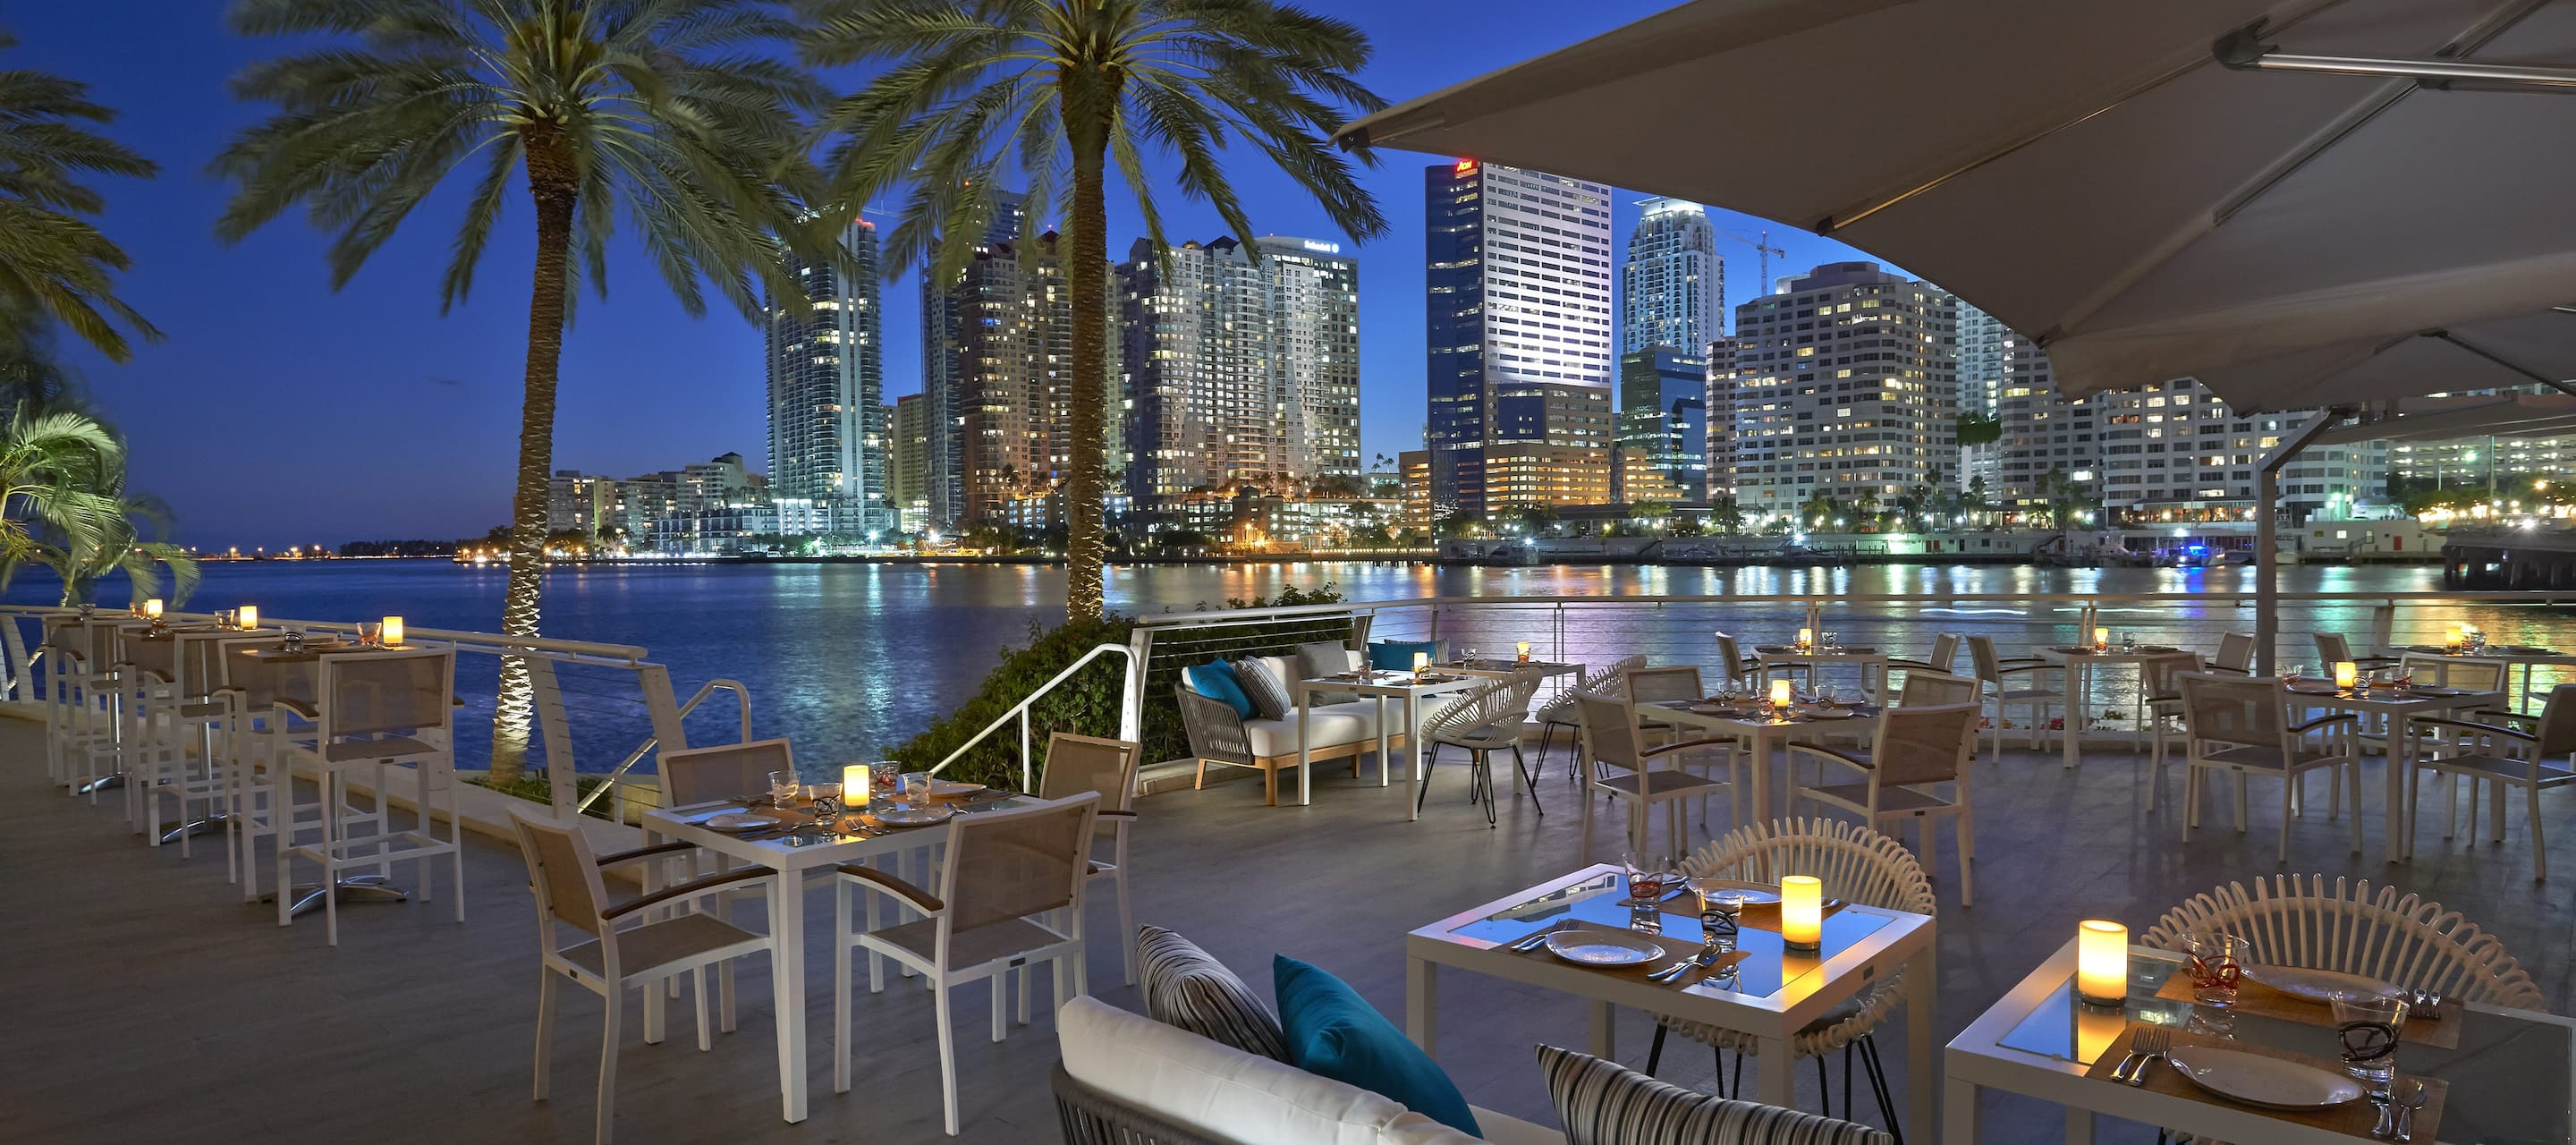 Best Restaurants Bars Lounges Mandarin Oriental Miami